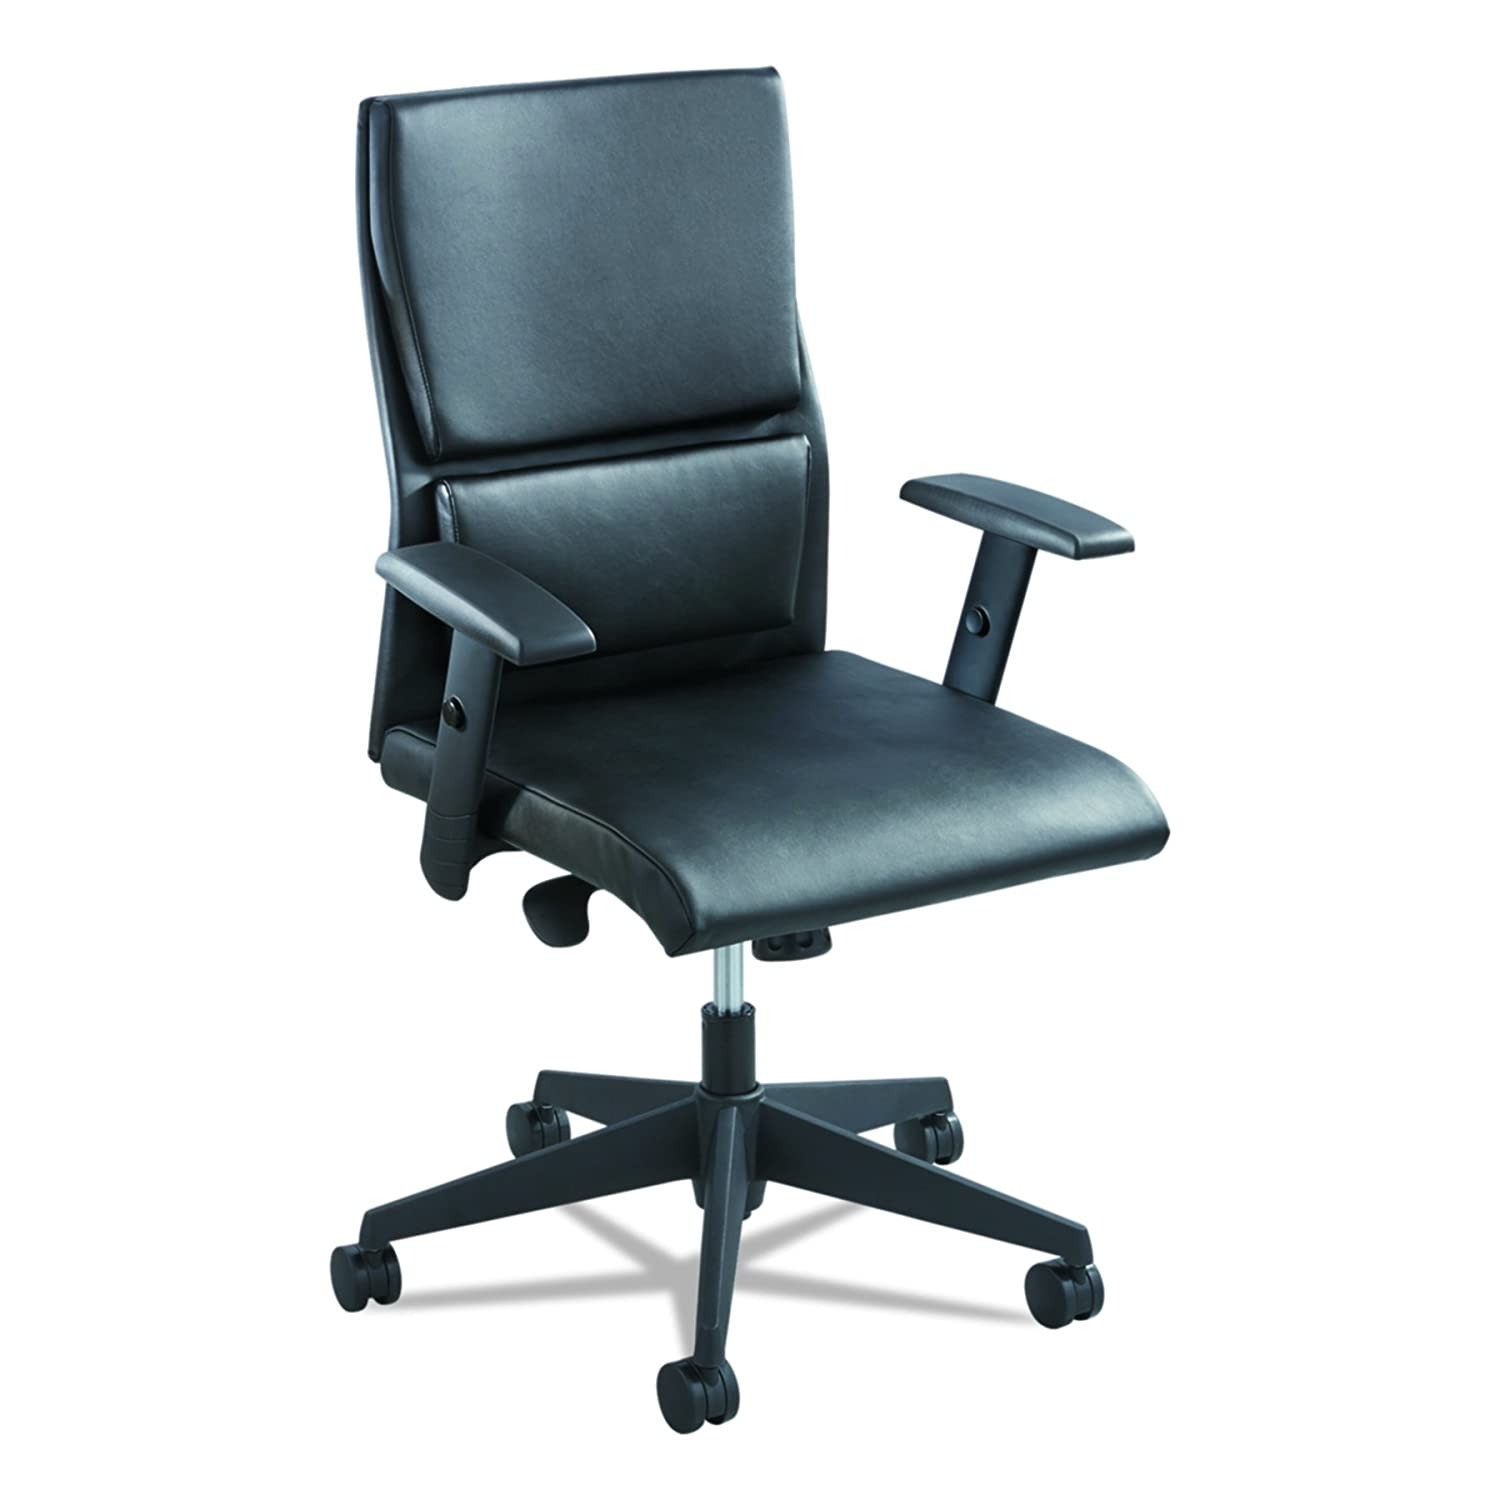 Safco Products Tuvi High Back Executive Chair, Black Safco Products CA 5070BL